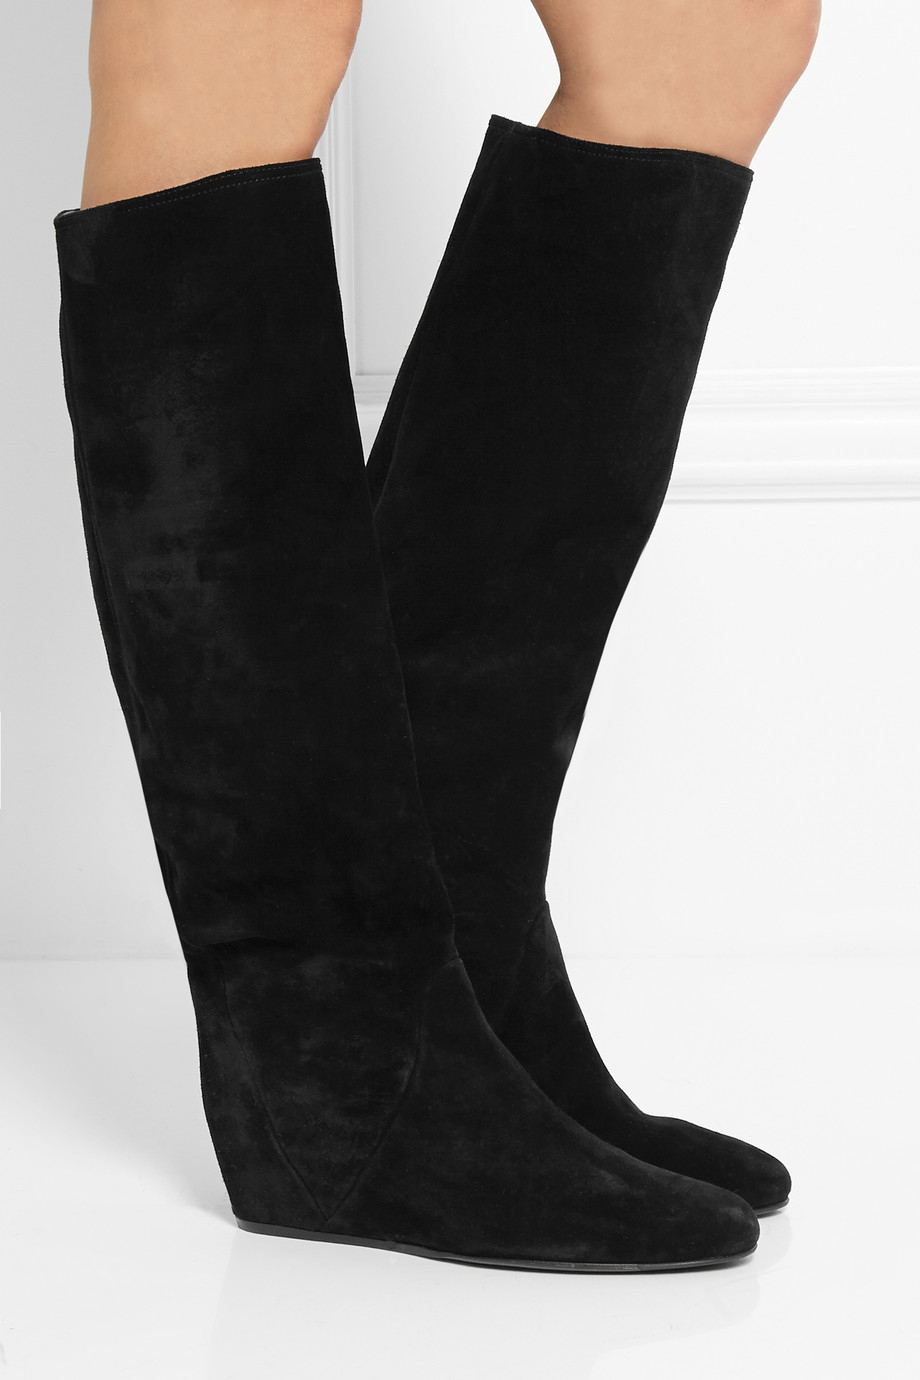 sale explore sale choice Lanvin Suede Wedge Boots outlet manchester great sale outlet cheap quality with credit card cheap price wjLvTO7